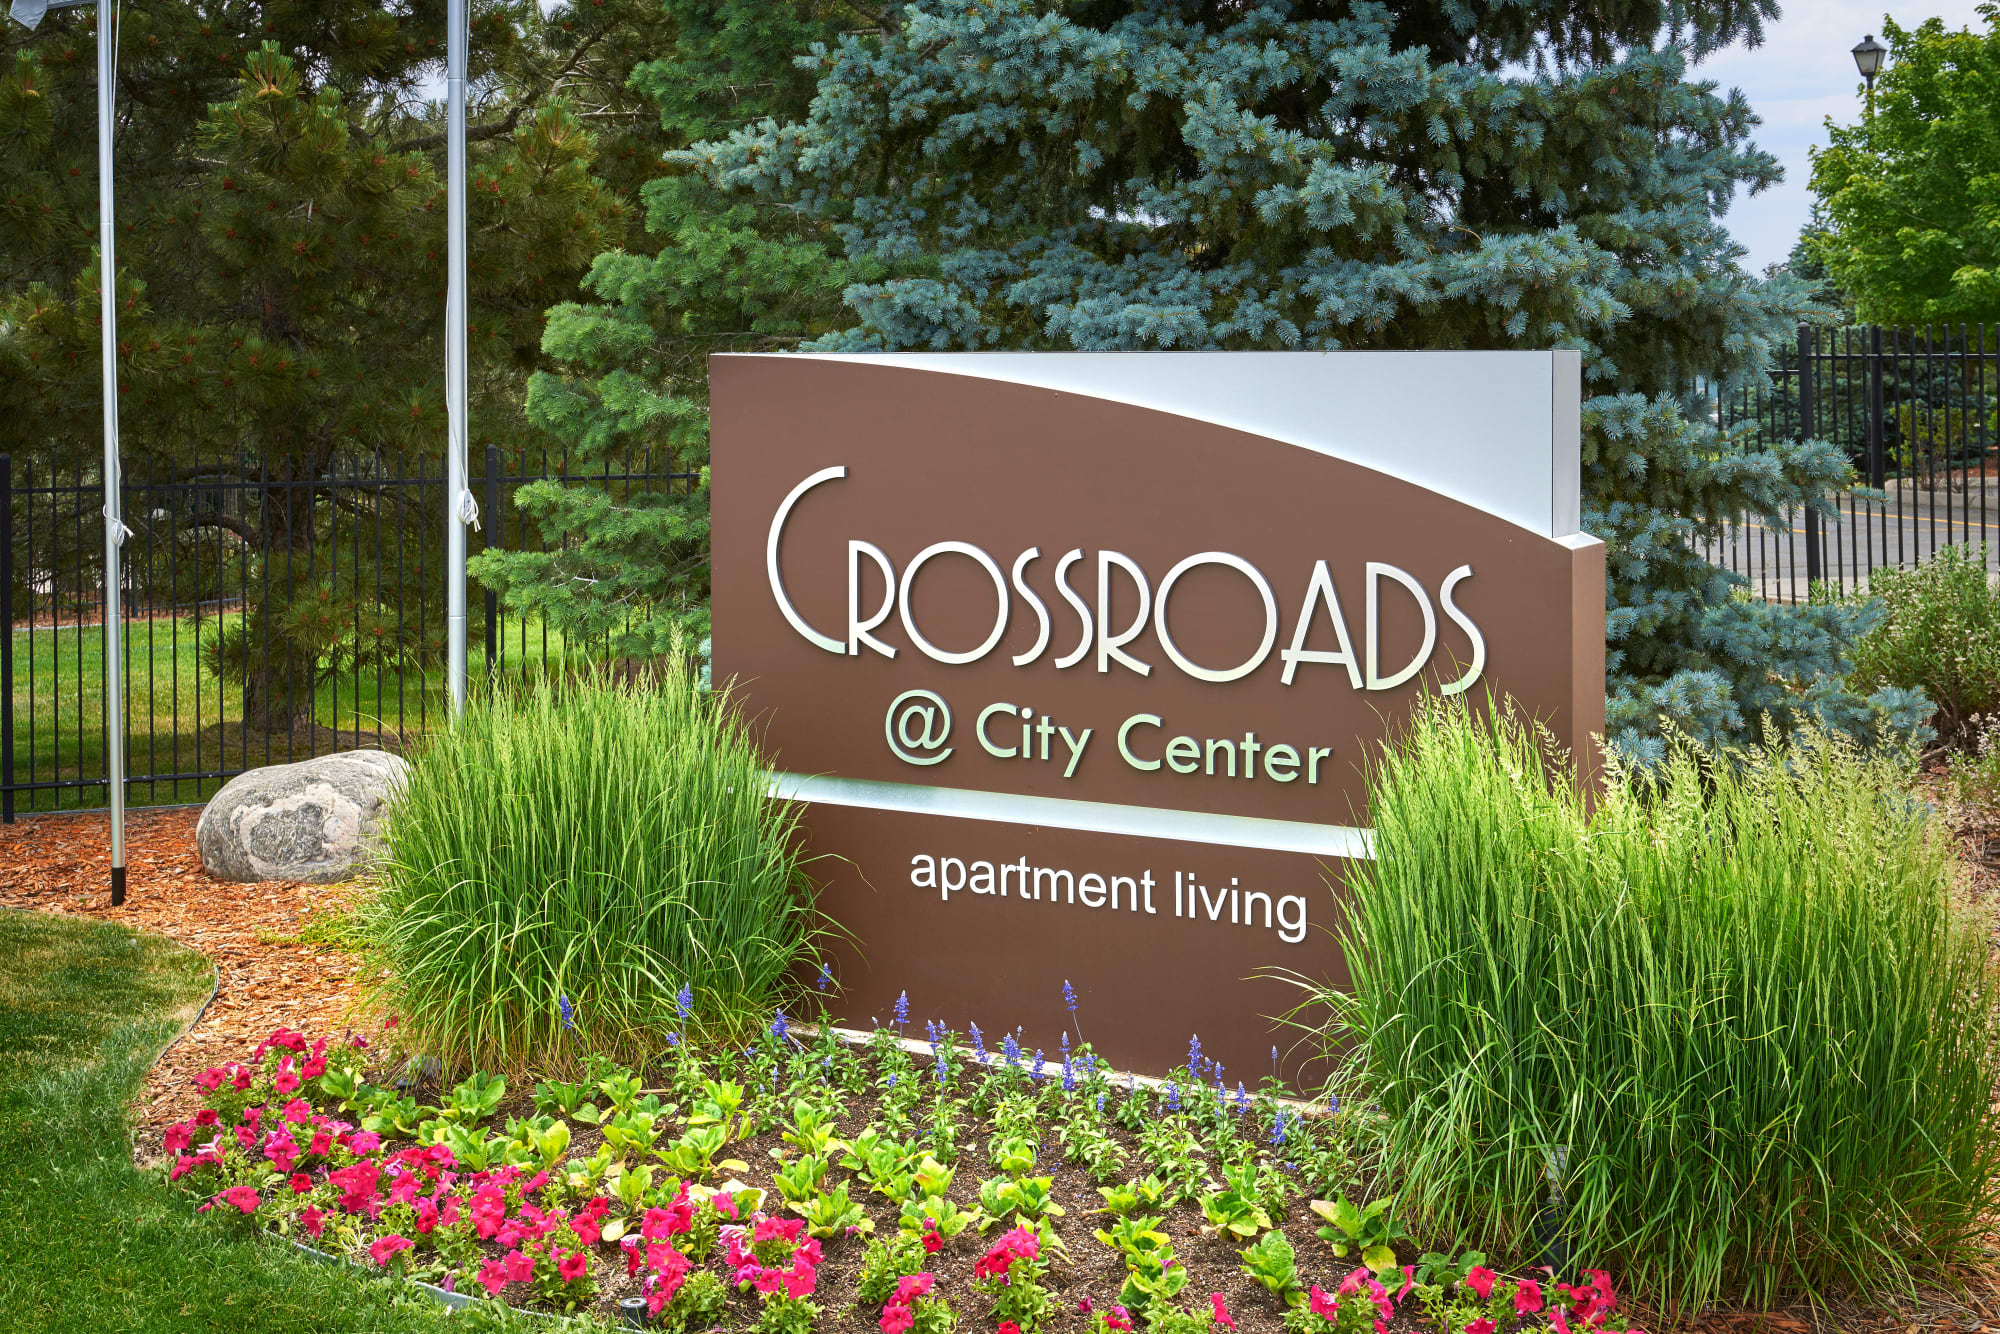 The monument sign at Crossroads at City Center Apartments in Aurora, Colorado